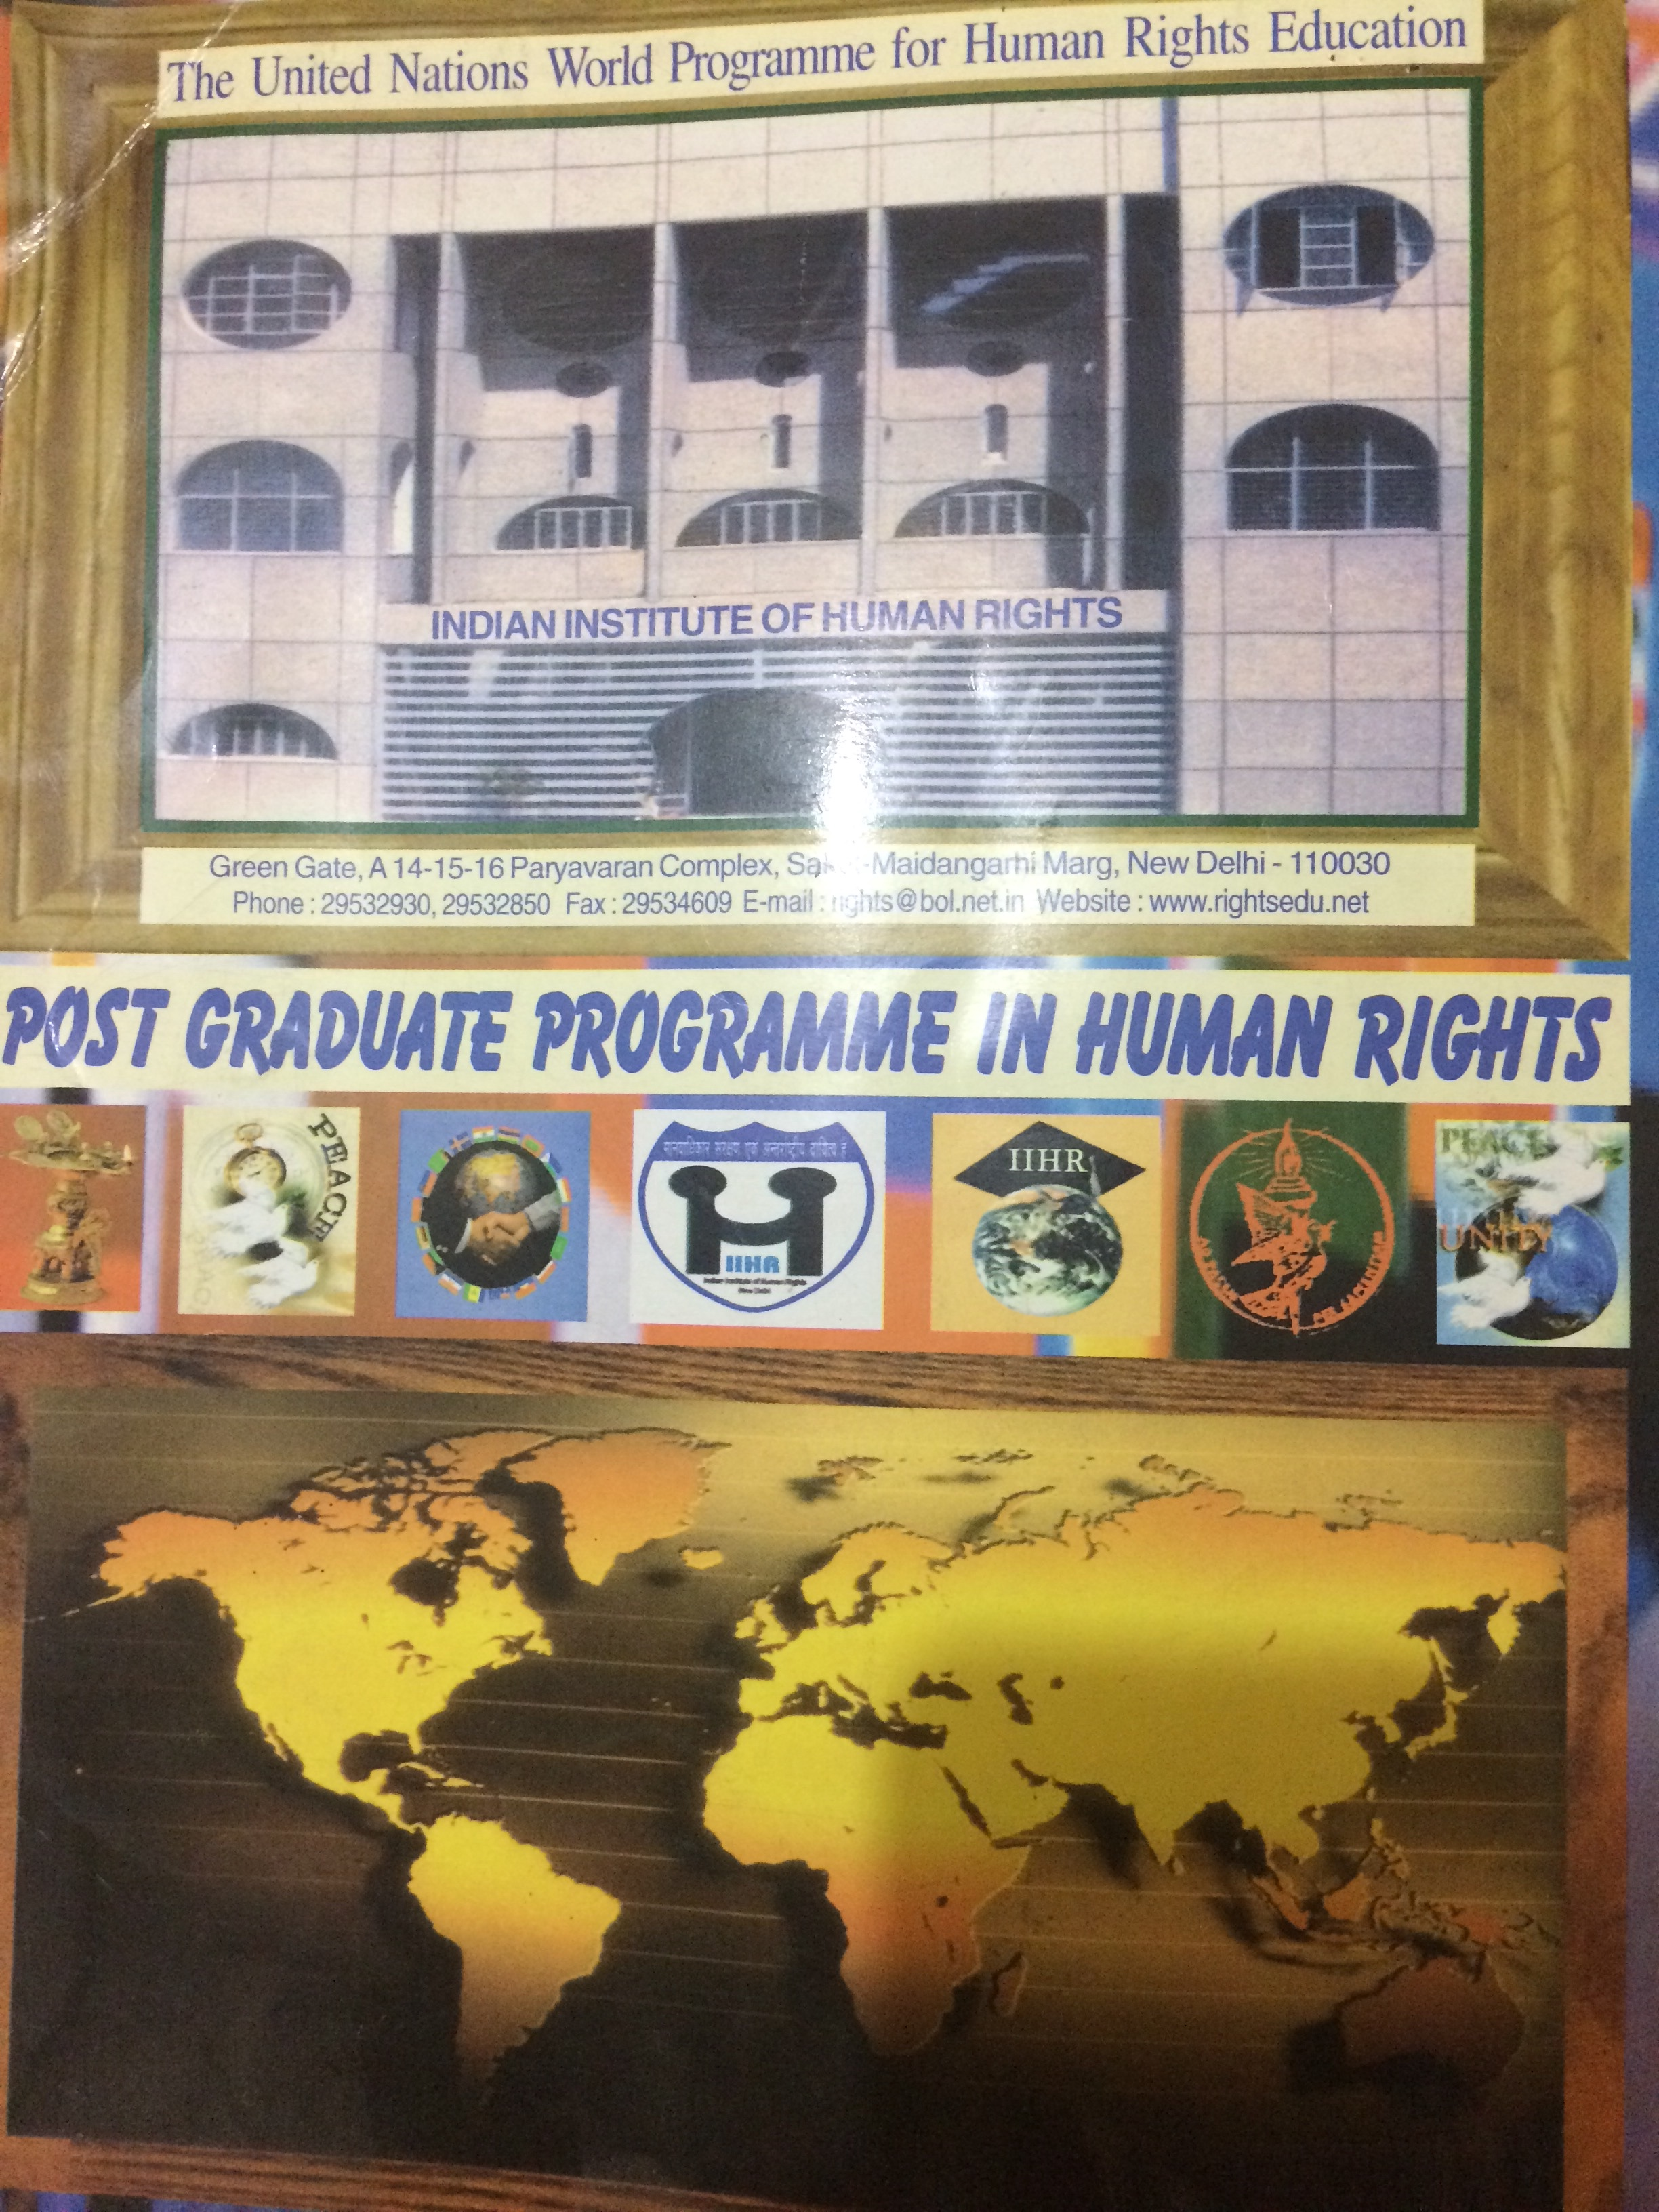 Indian Institute of Human Rights